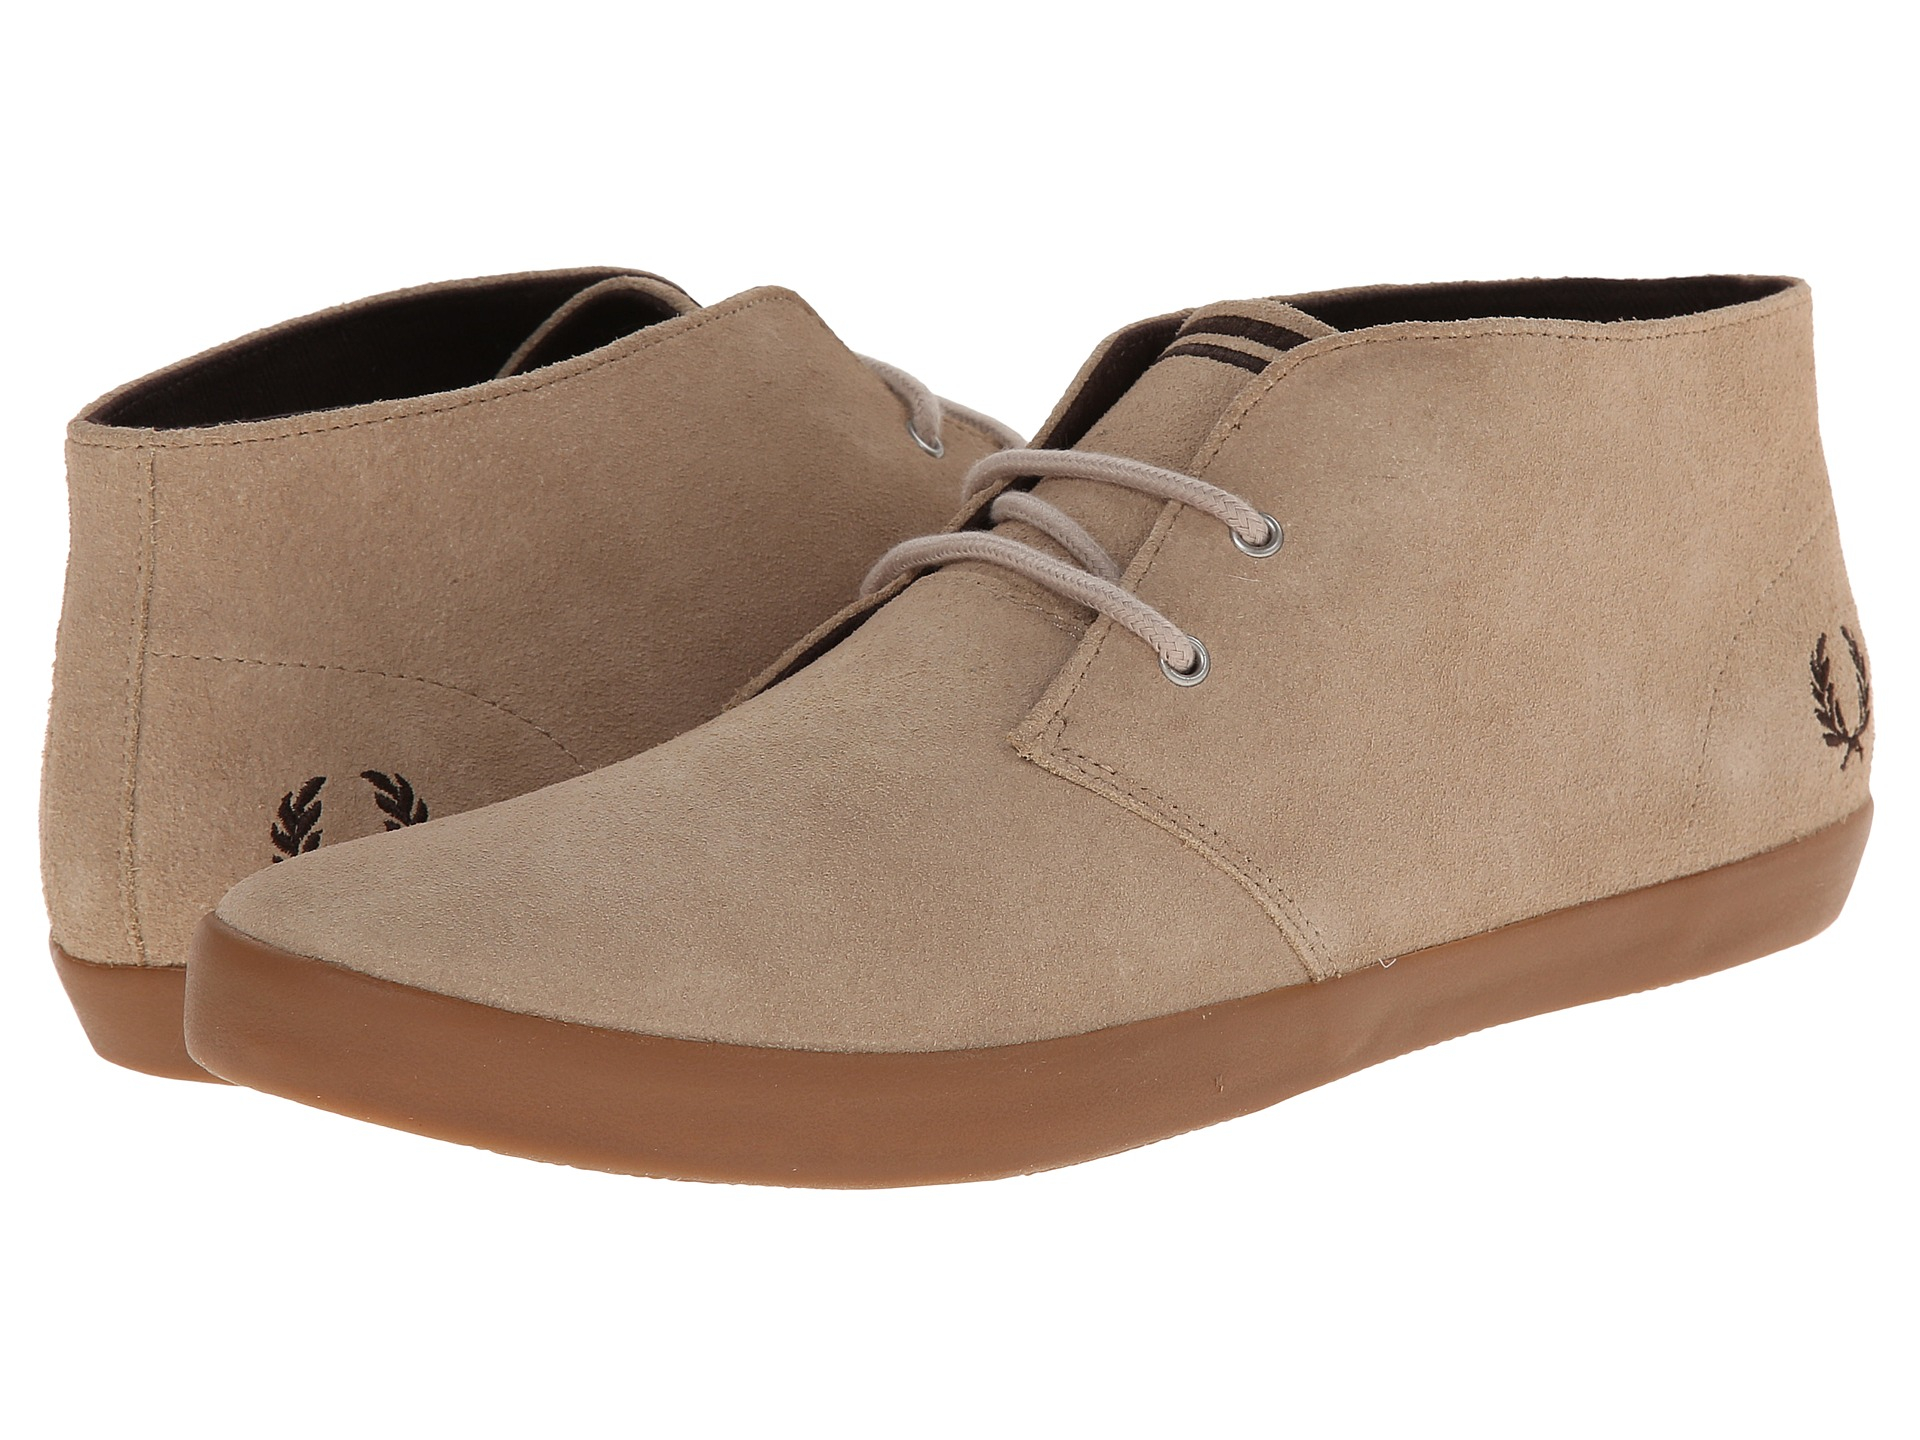 Fred Perry Menswear - Fred Perry Byron Mid Suede Shoes Beige